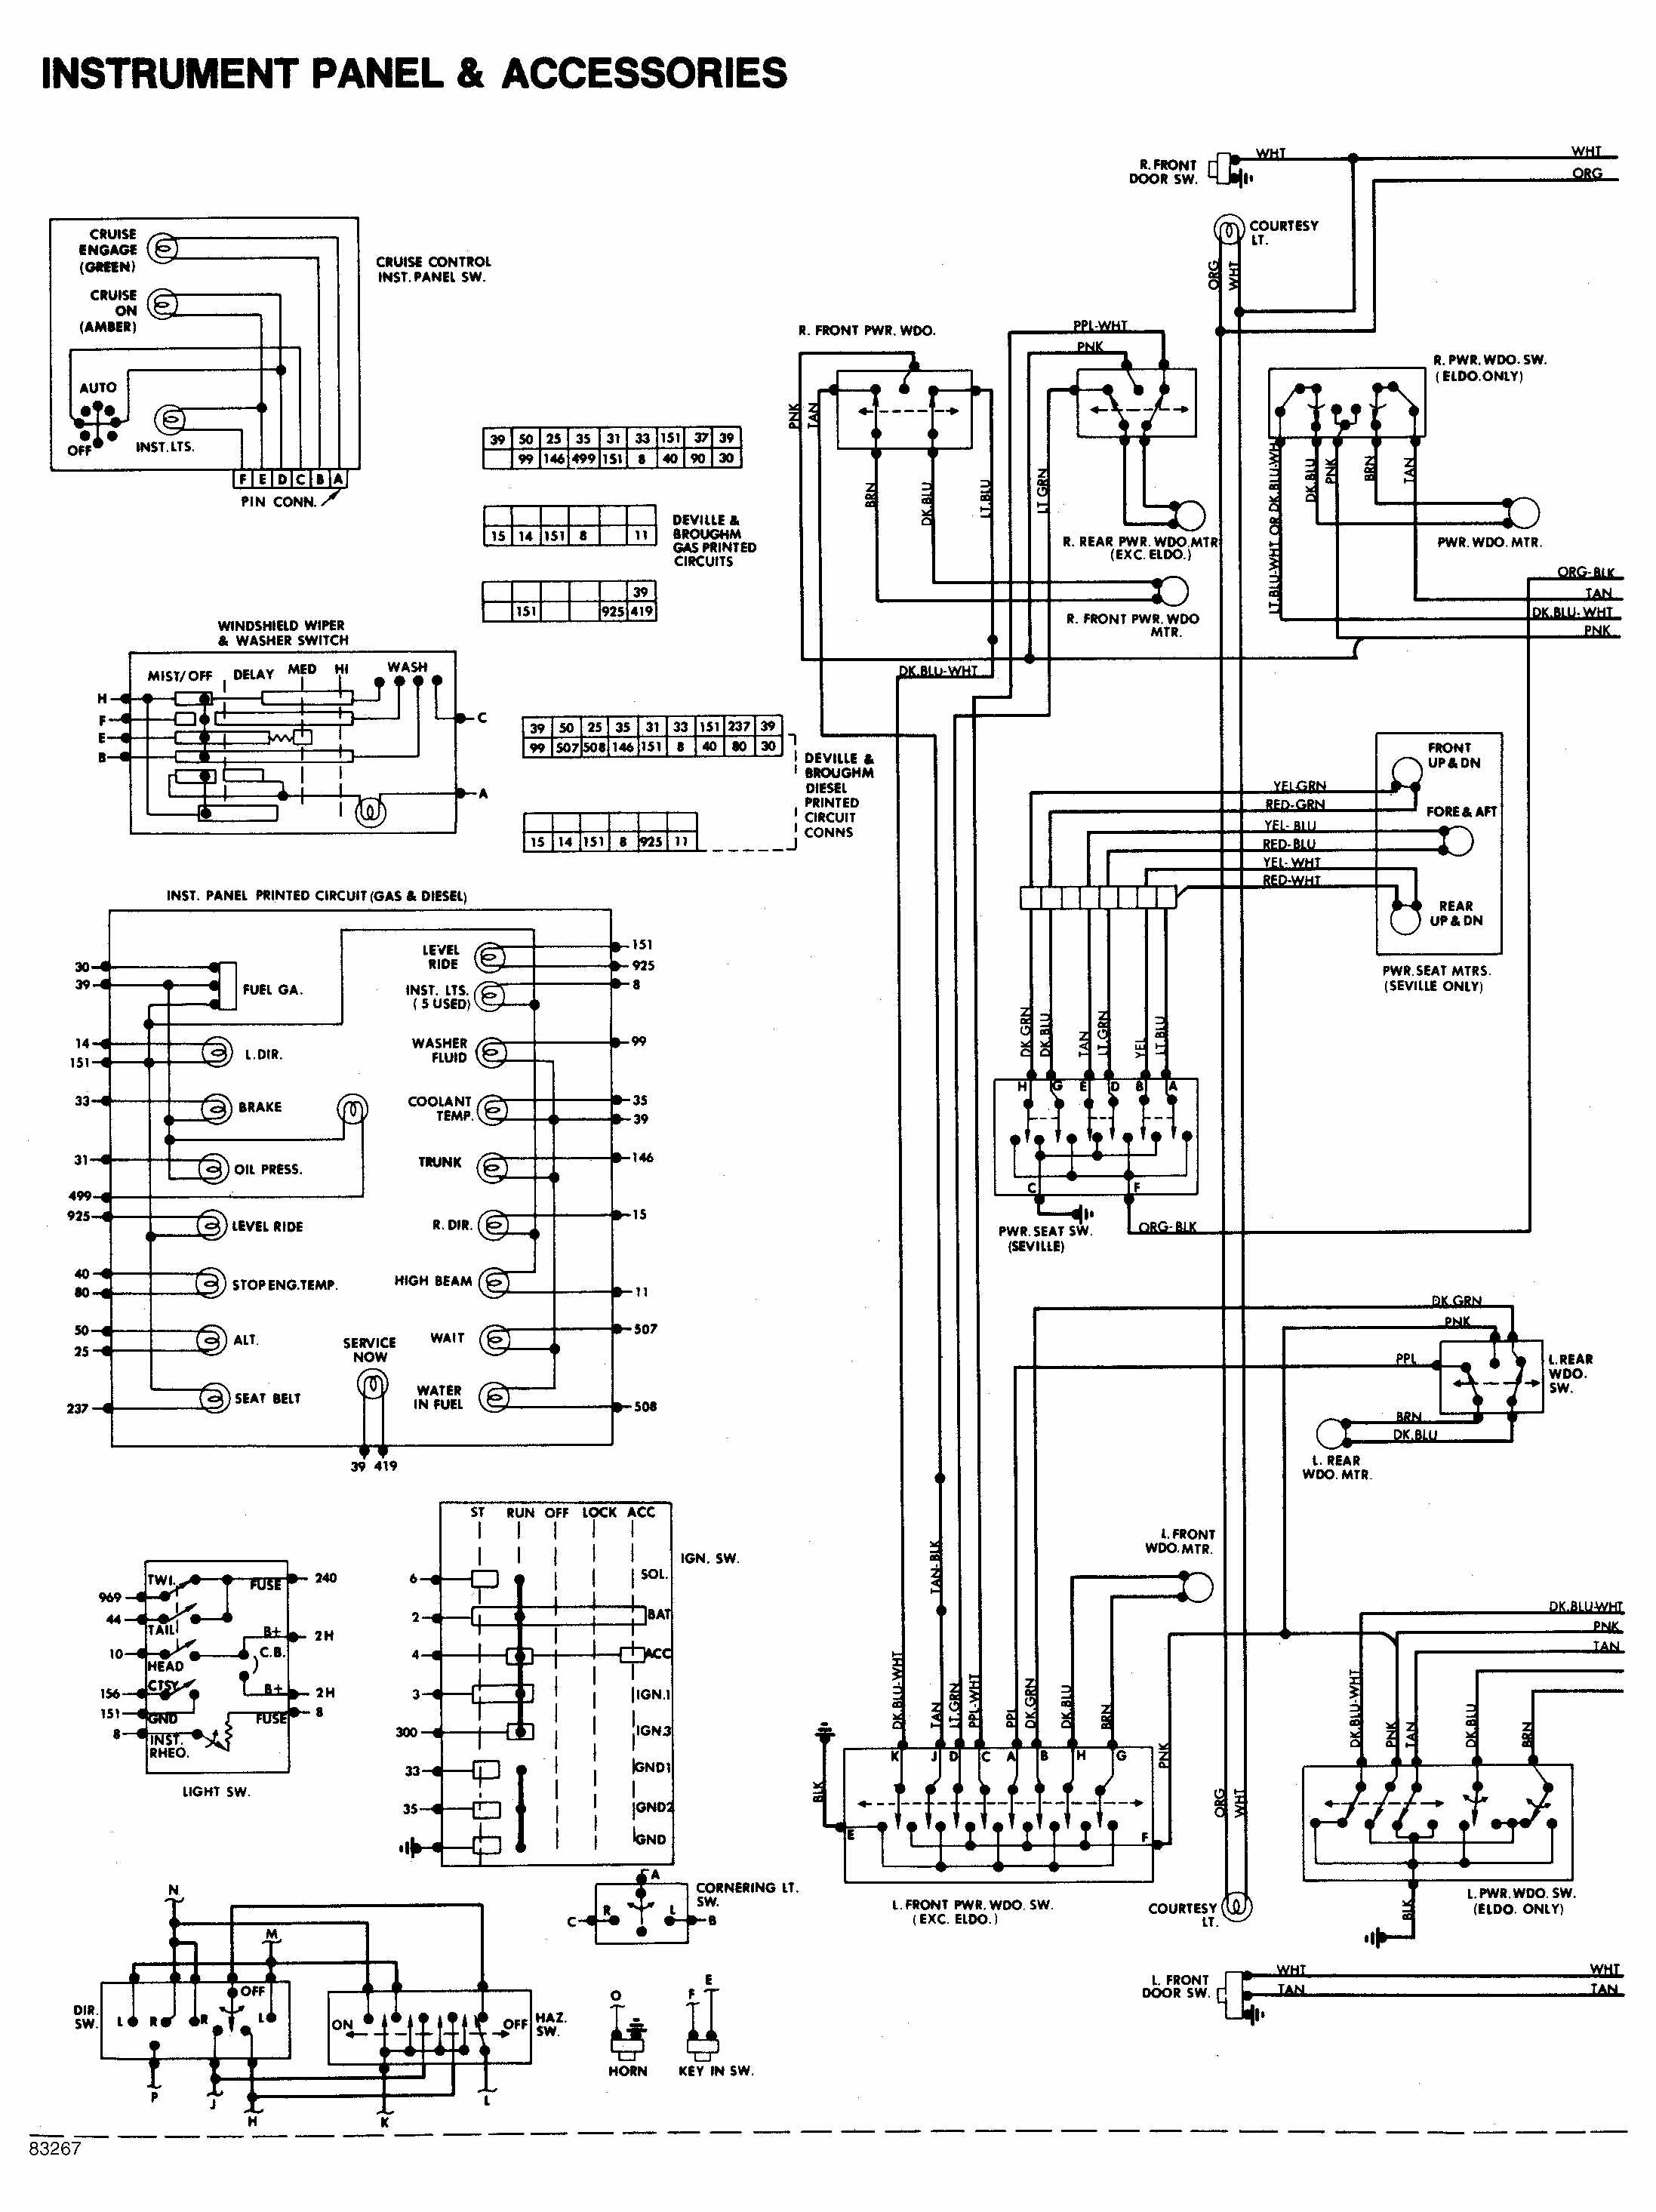 Bmw E46 Fuse Box Diagram In Addition 2002 Bmw X5 Fuse Diagram In